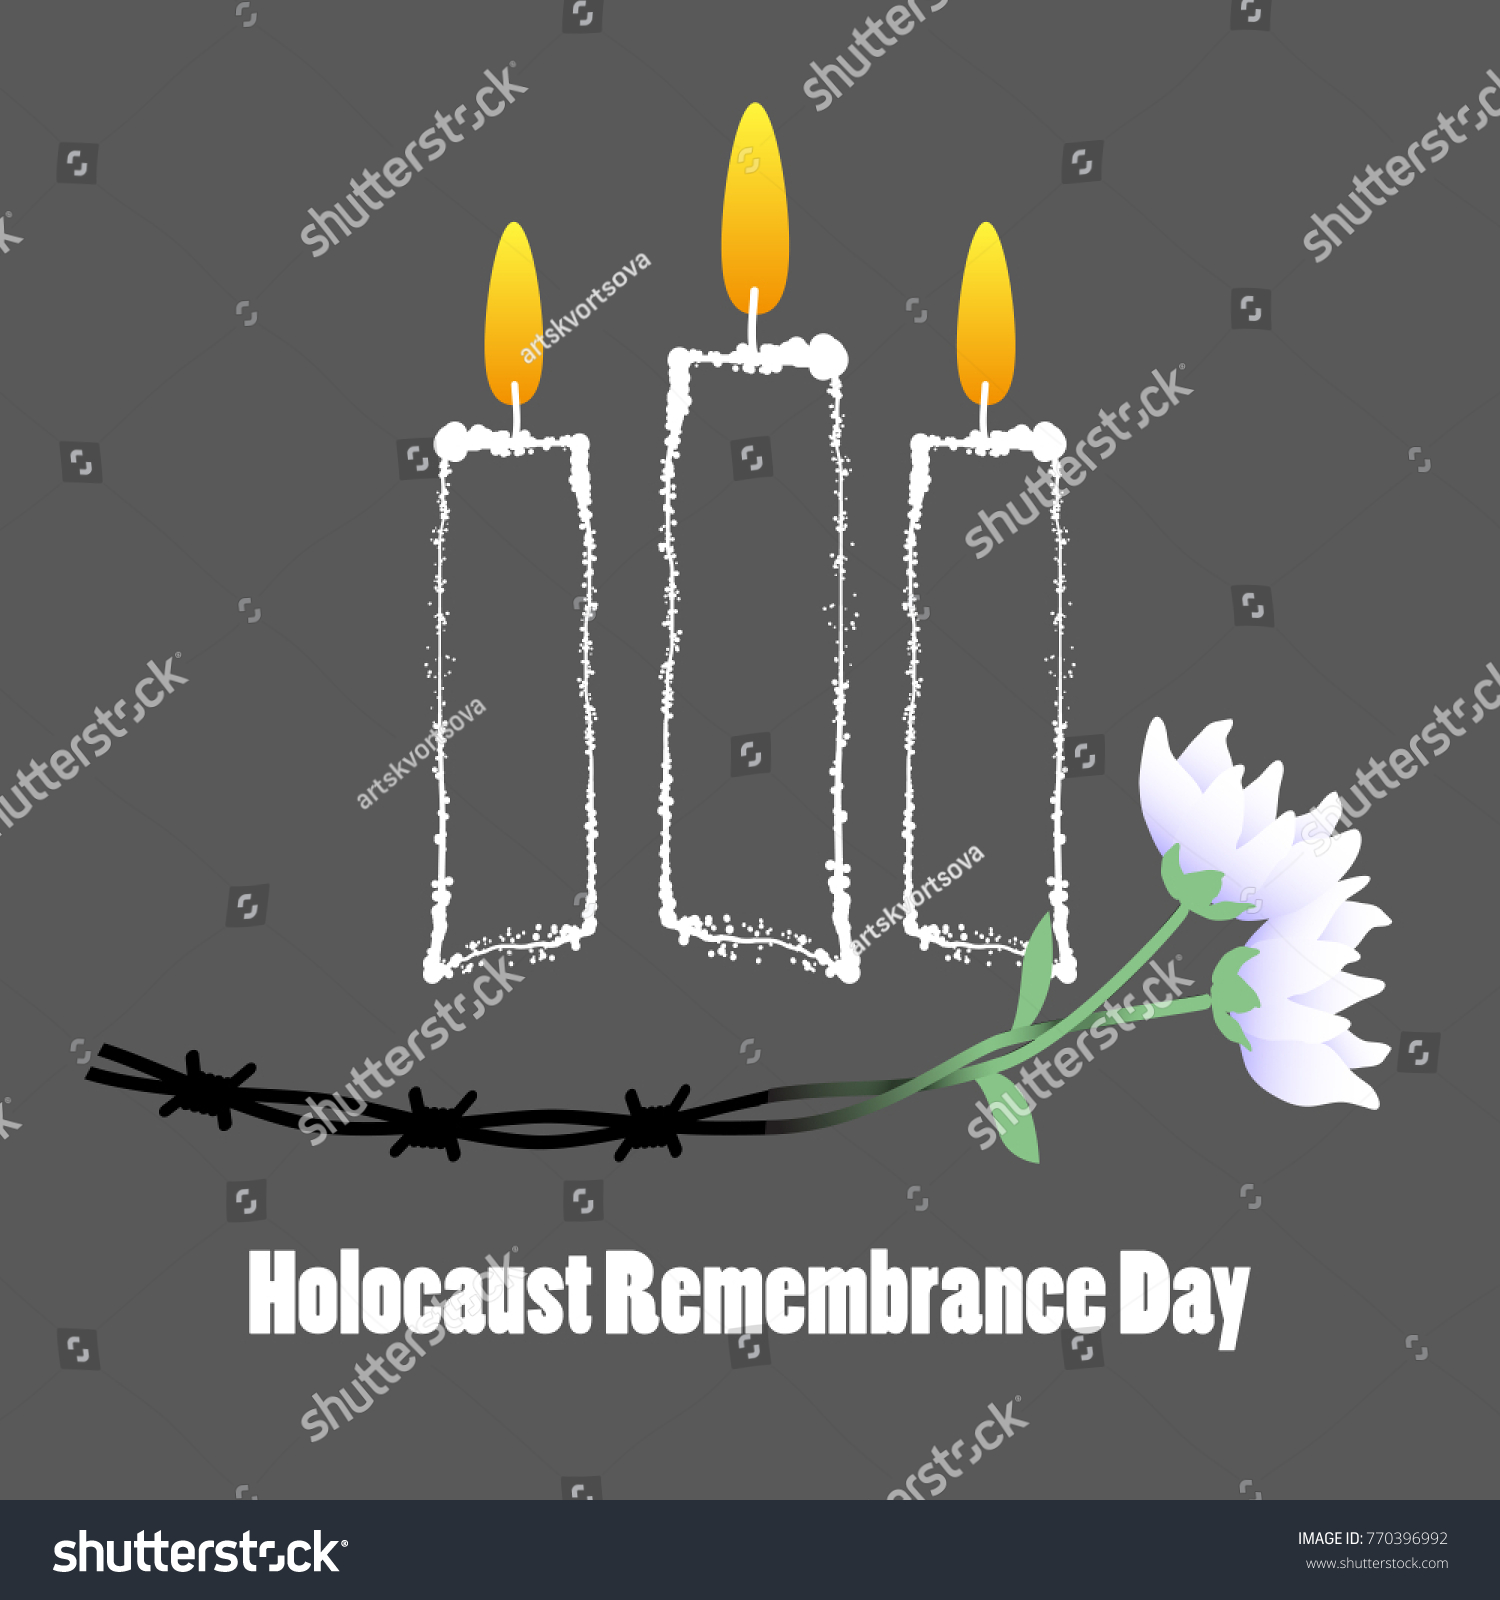 Holocaust Remembrance Day Barbed Wire Candles Stock Vector (2018 ...